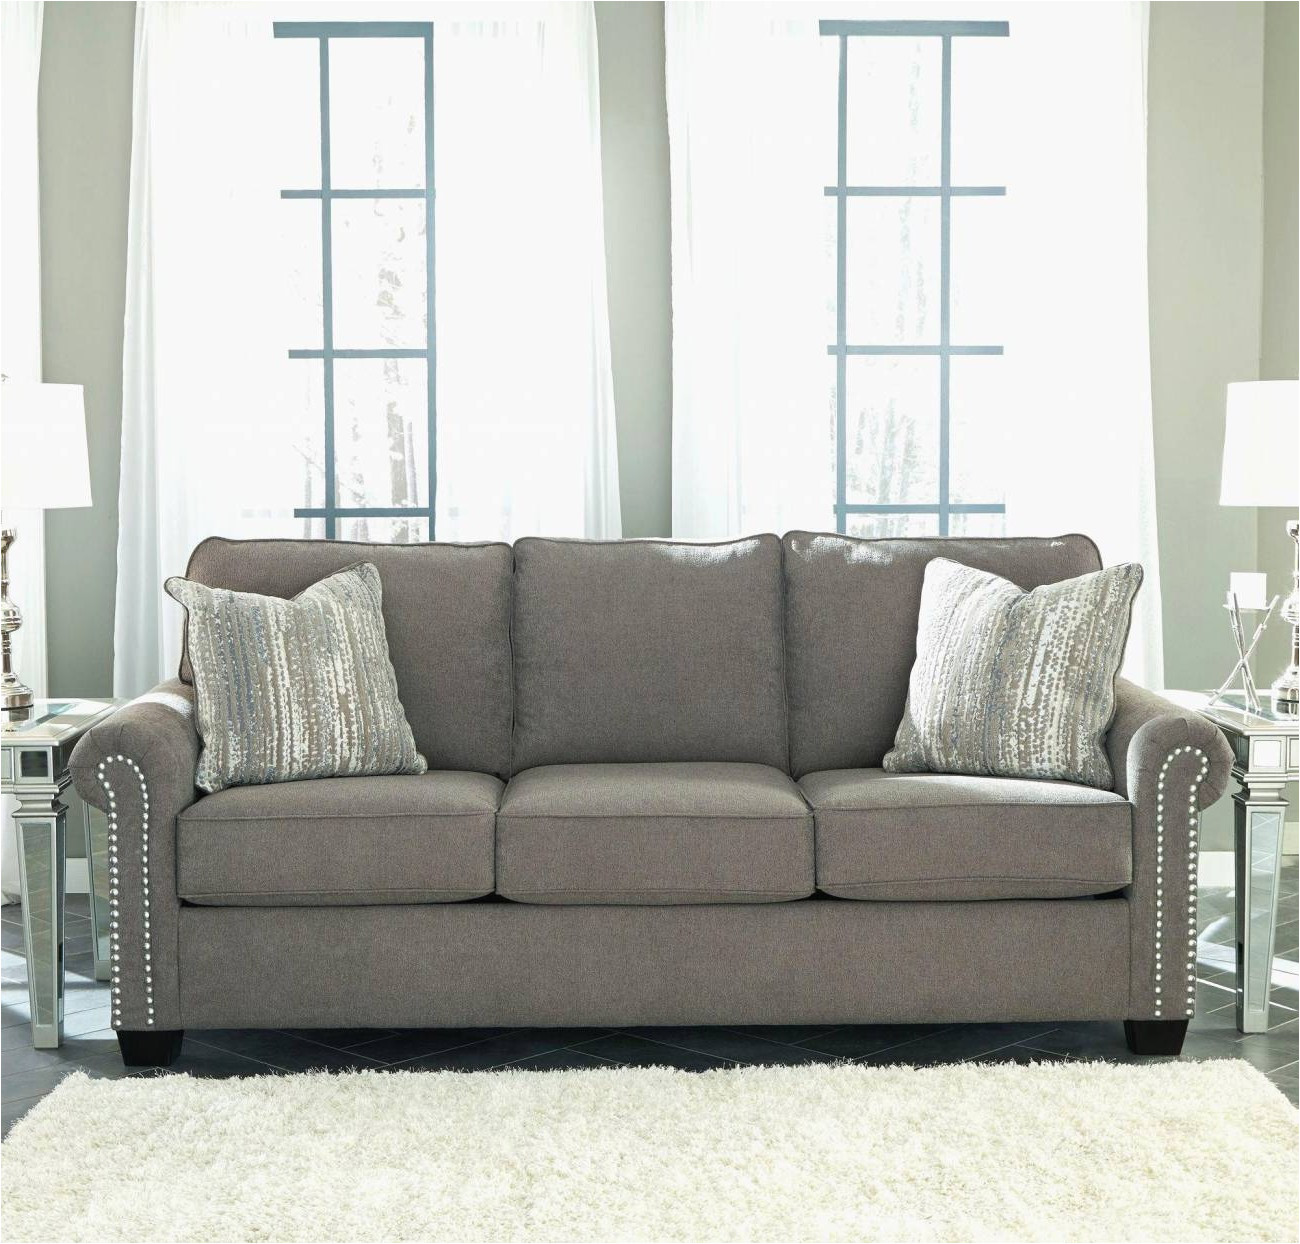 elegant living room furniture unique furniture pull out couch elegant davenport couch 0d tags amazing of 31 inspiration for bainbridge double fabric